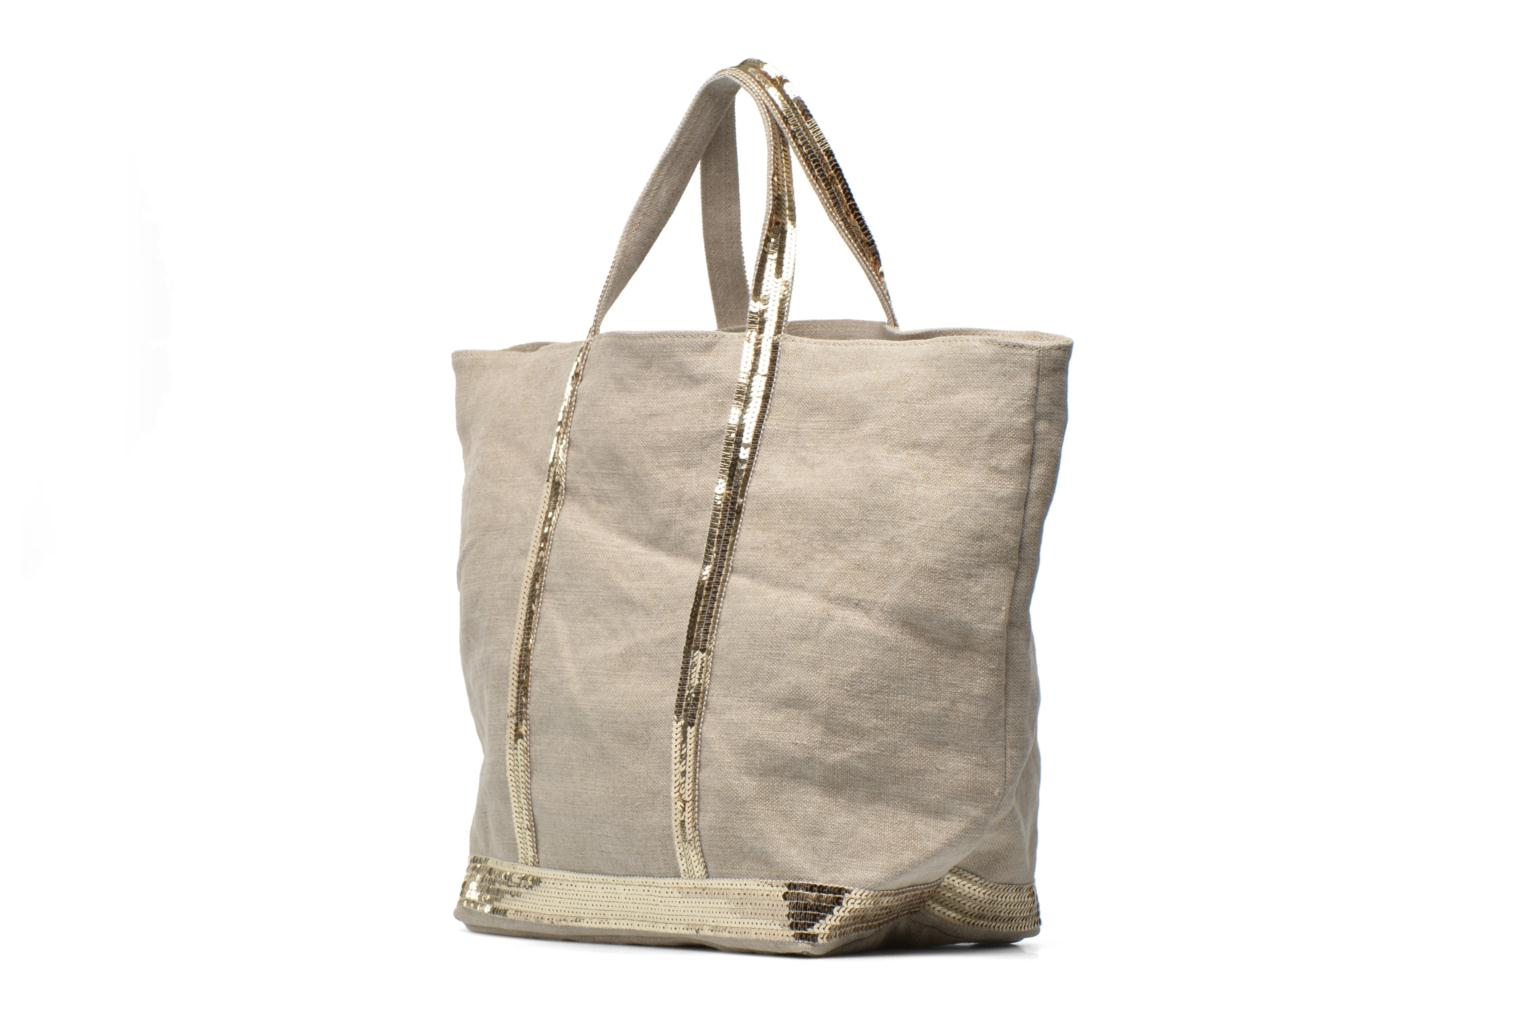 Handbags Vanessa Bruno Cabas Lin paillettes M+ Beige view from the right